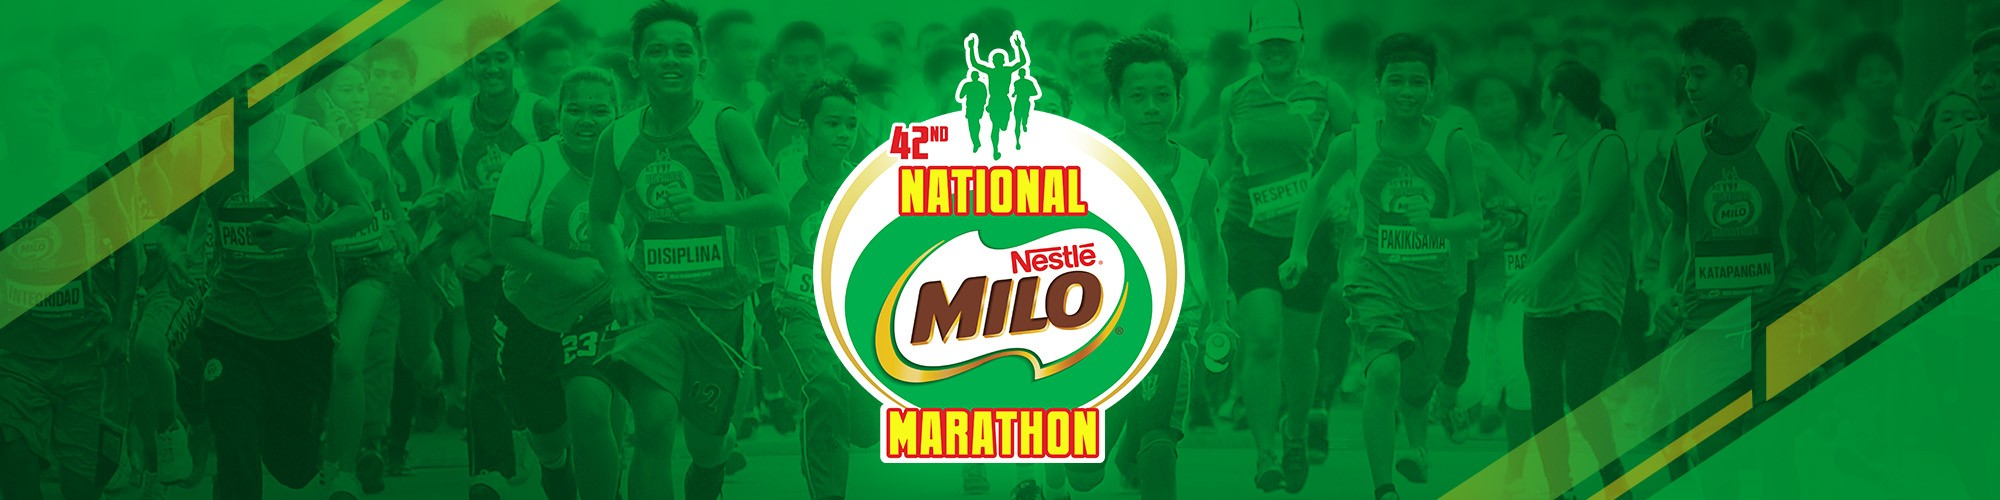 42nd National MILO Marathon - Gensan Leg